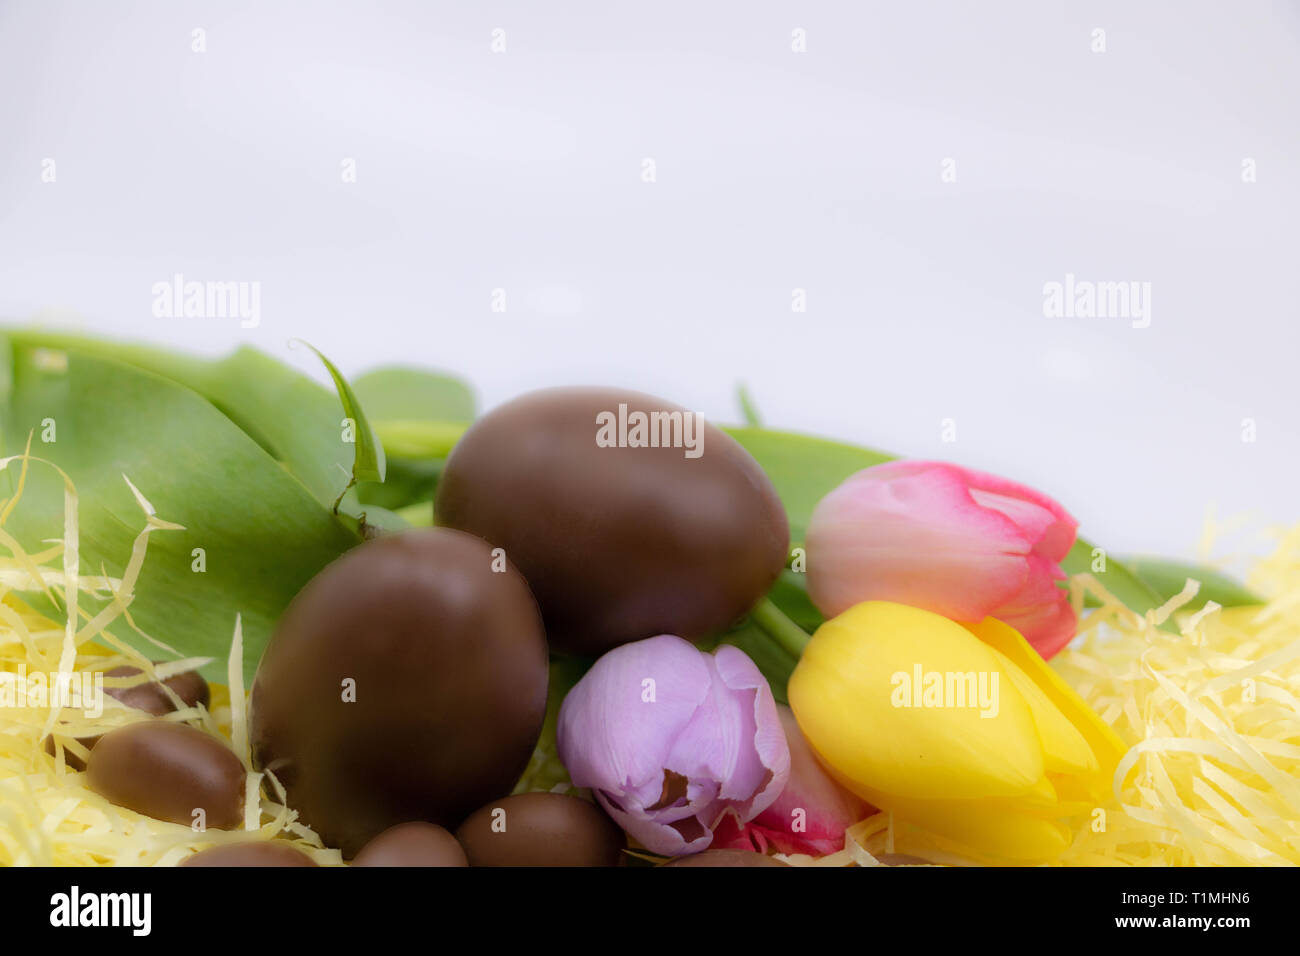 Shabby chic graphic resource for Easter - Stock Image